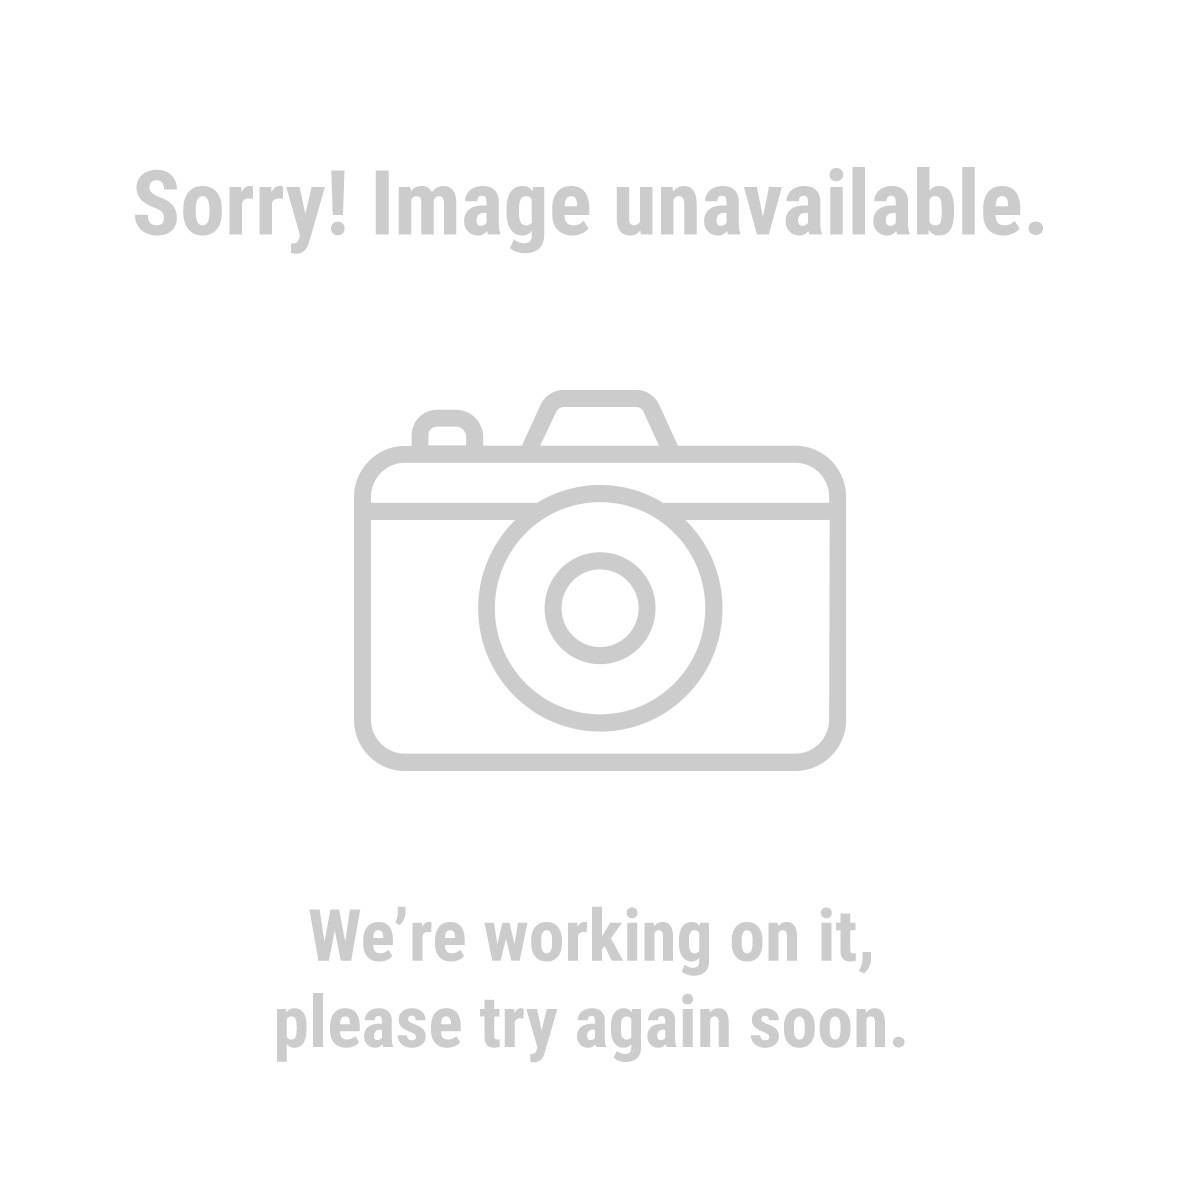 "Haul-Master 95021 1/4"" x 4 Ft. Trailer Safety Chain"